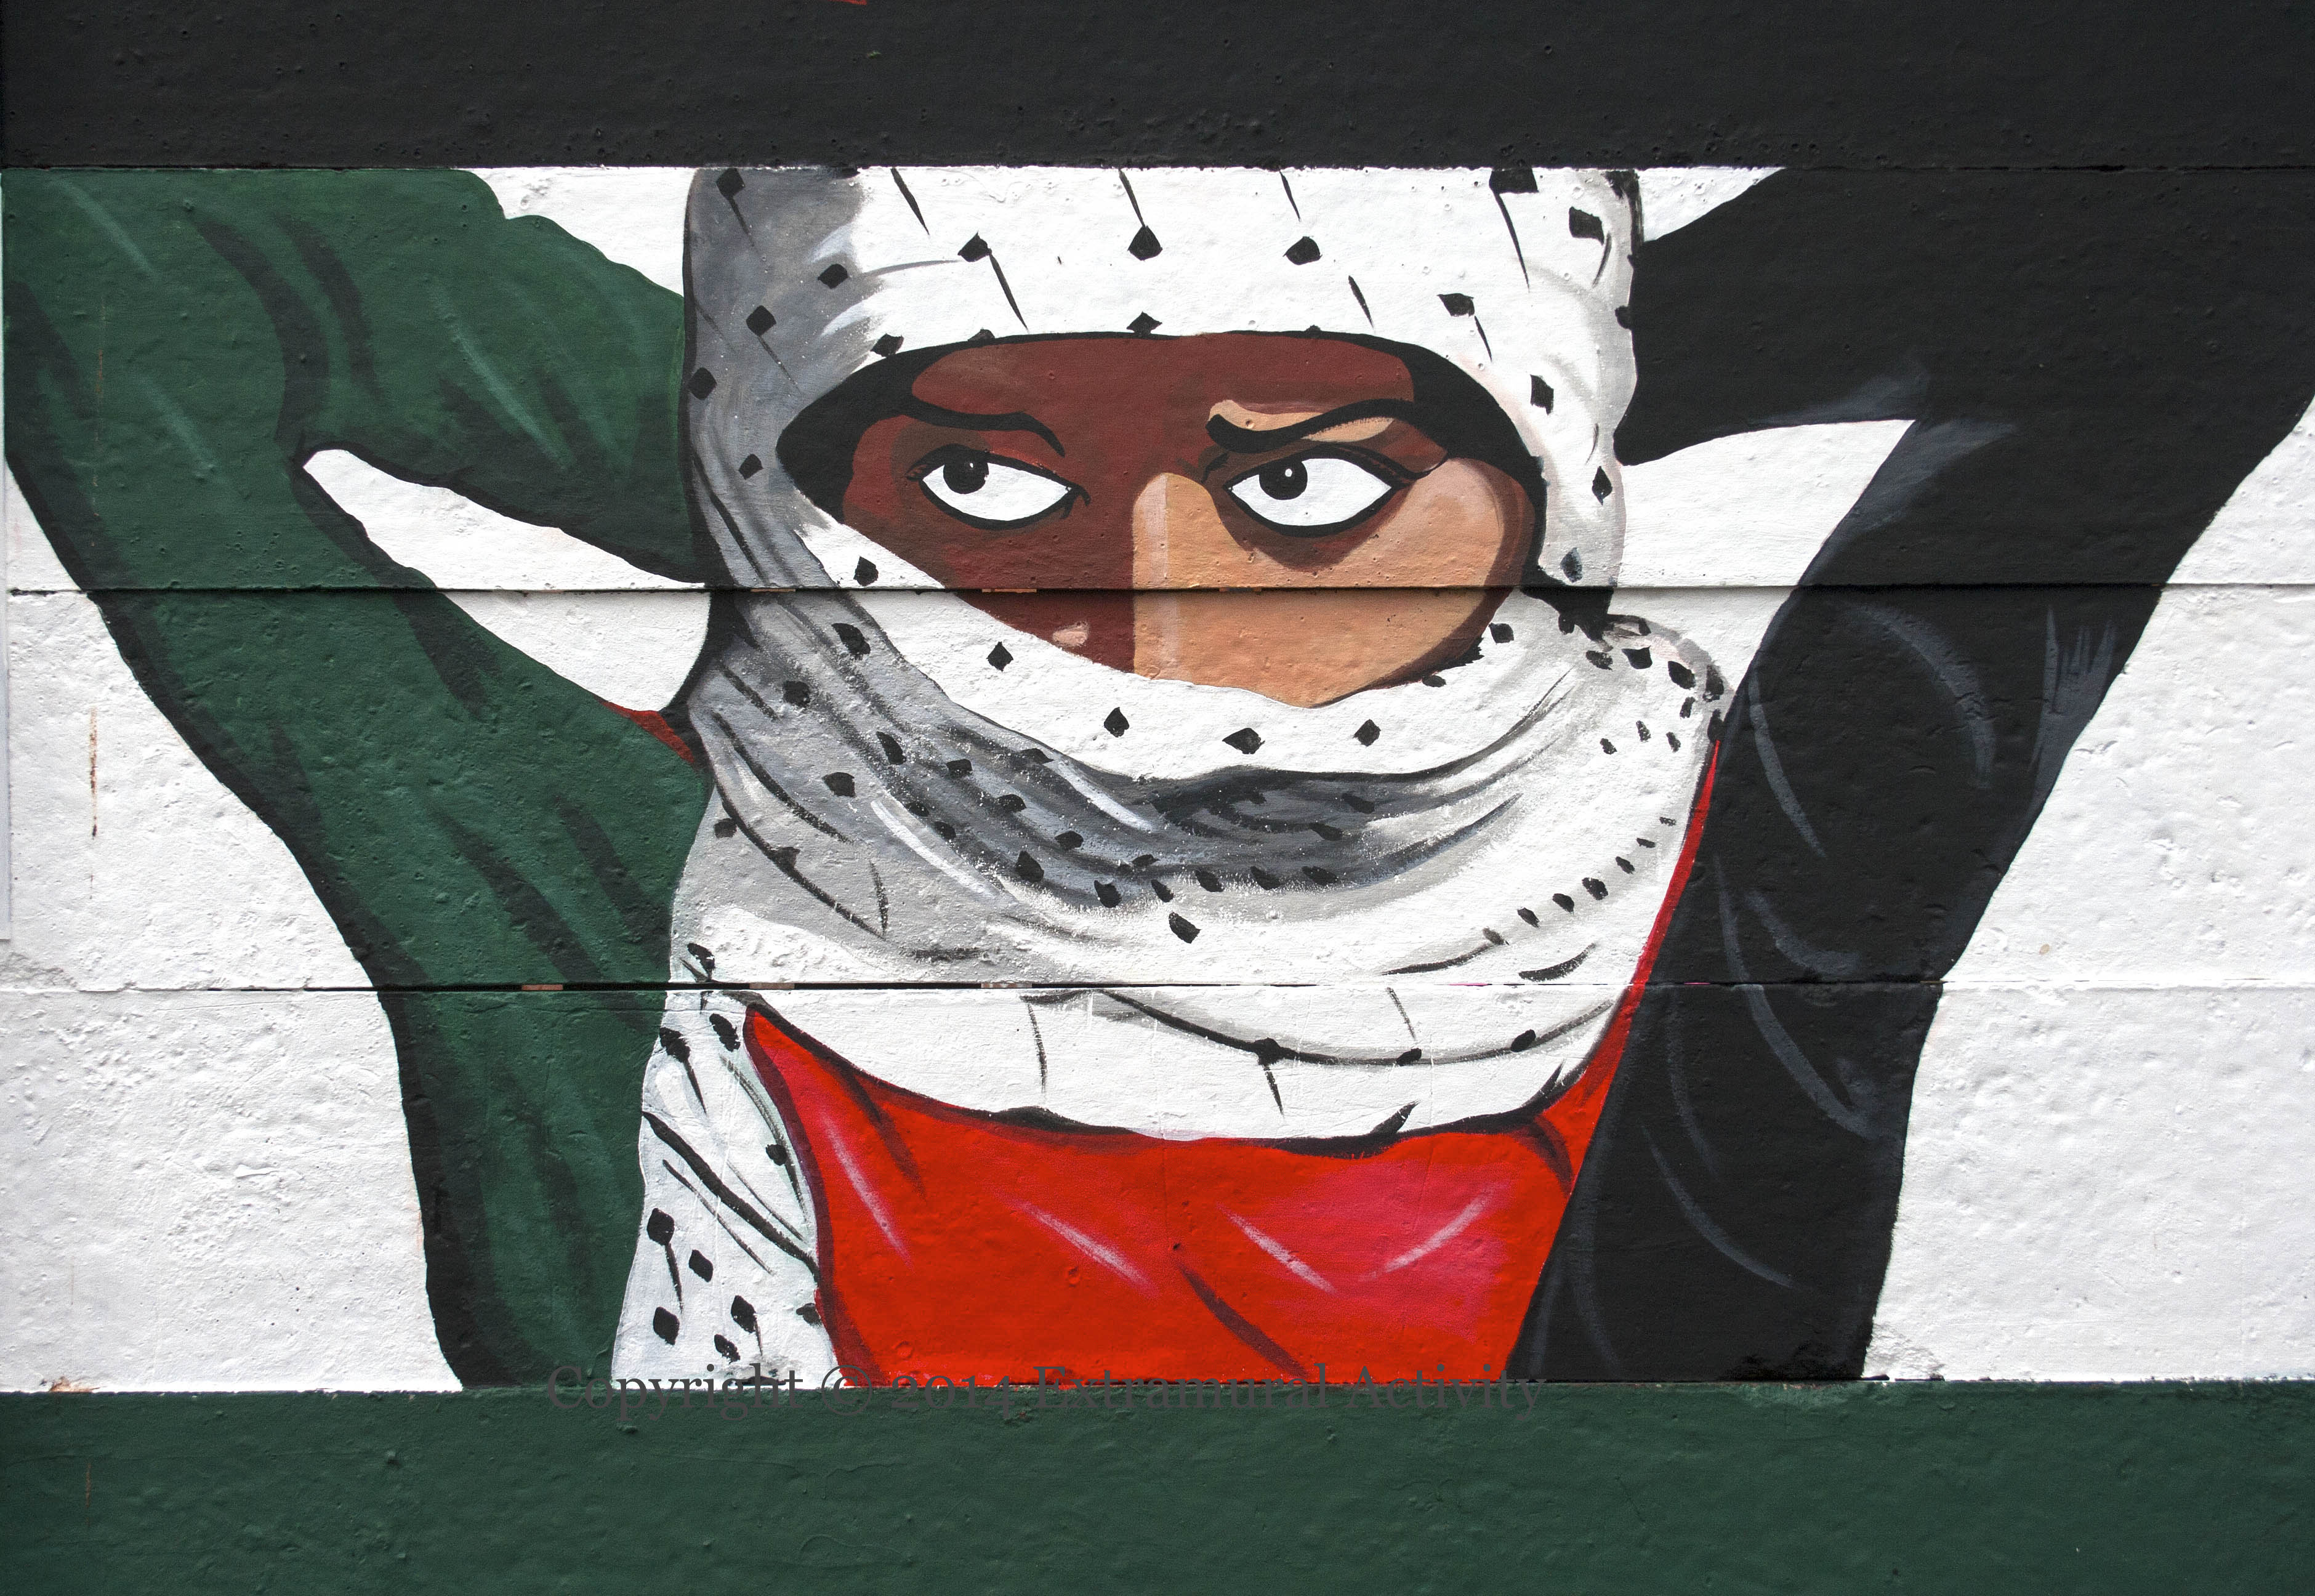 Made in palestine kufiya scarves as a symbol of for Extra mural meaning